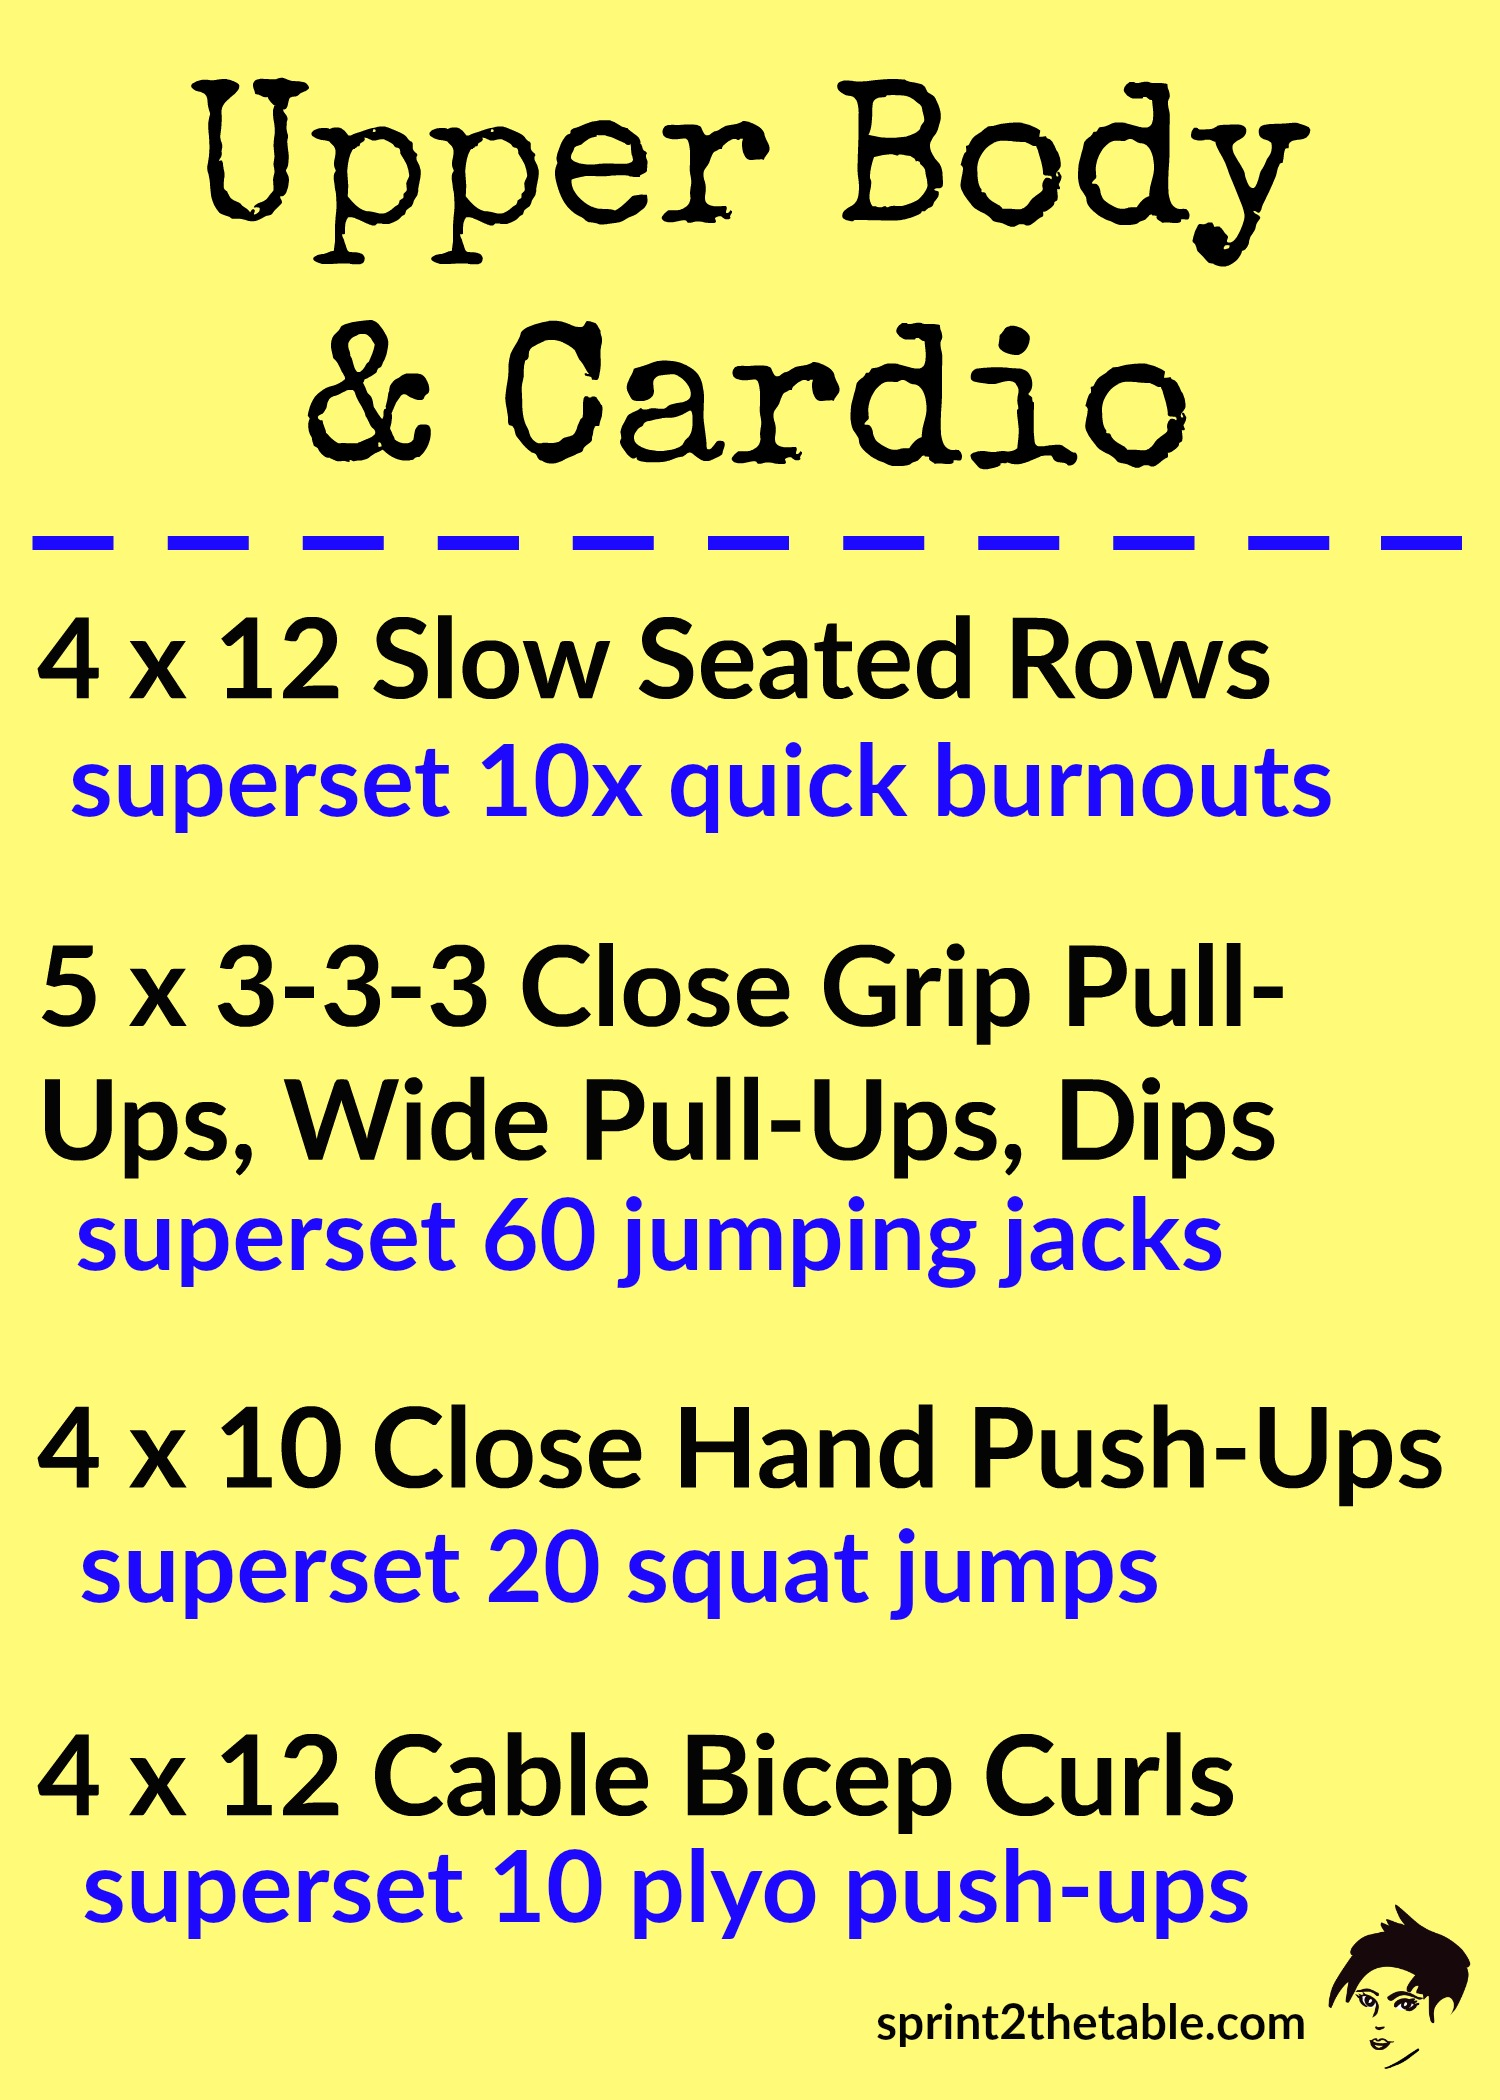 Upper Body and Cardio Workout - get a good workout without spending hours in a gym